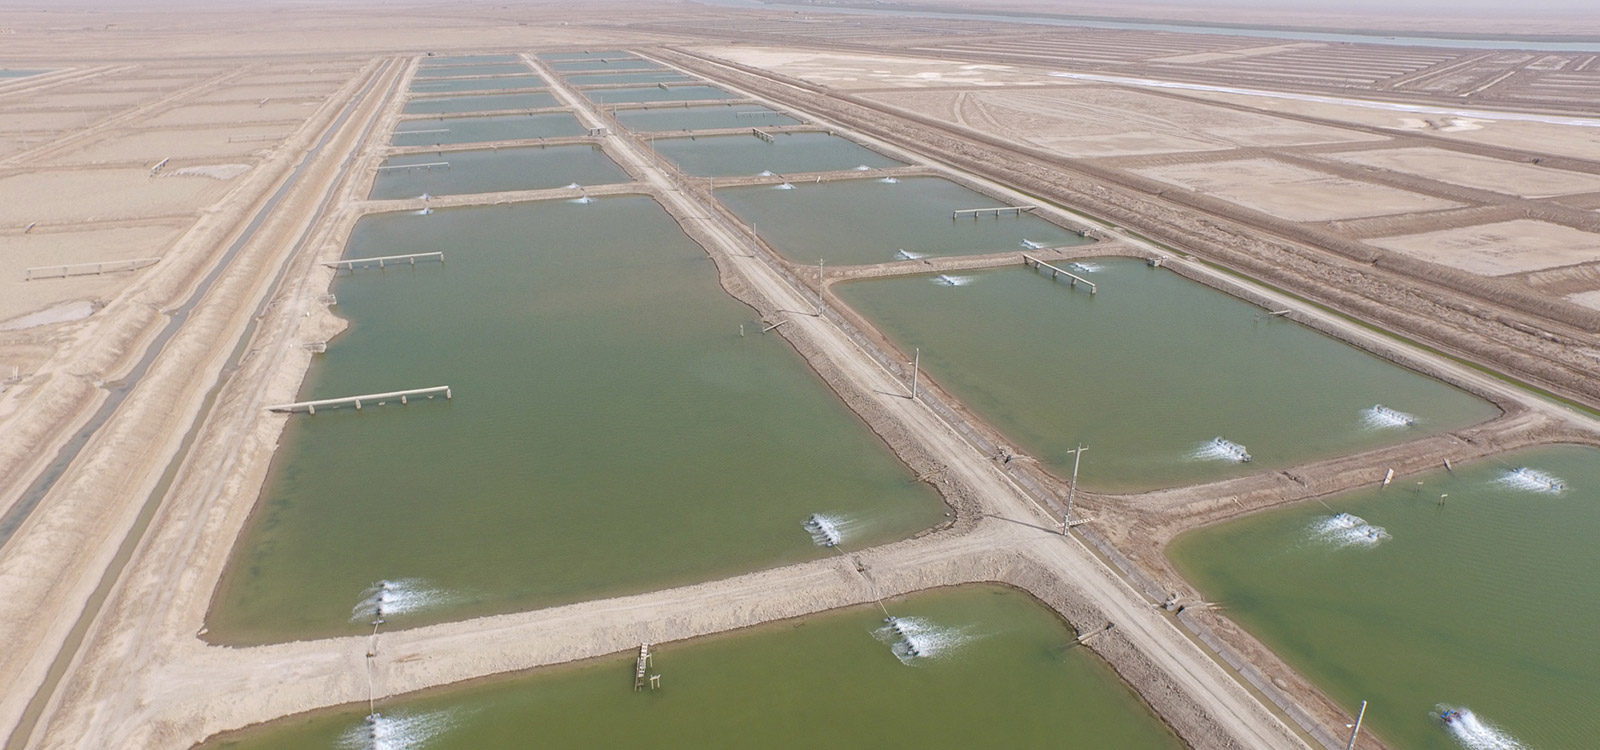 Study, Design, and supervision of 5000 ha Choebdeh shrimp breeding complex